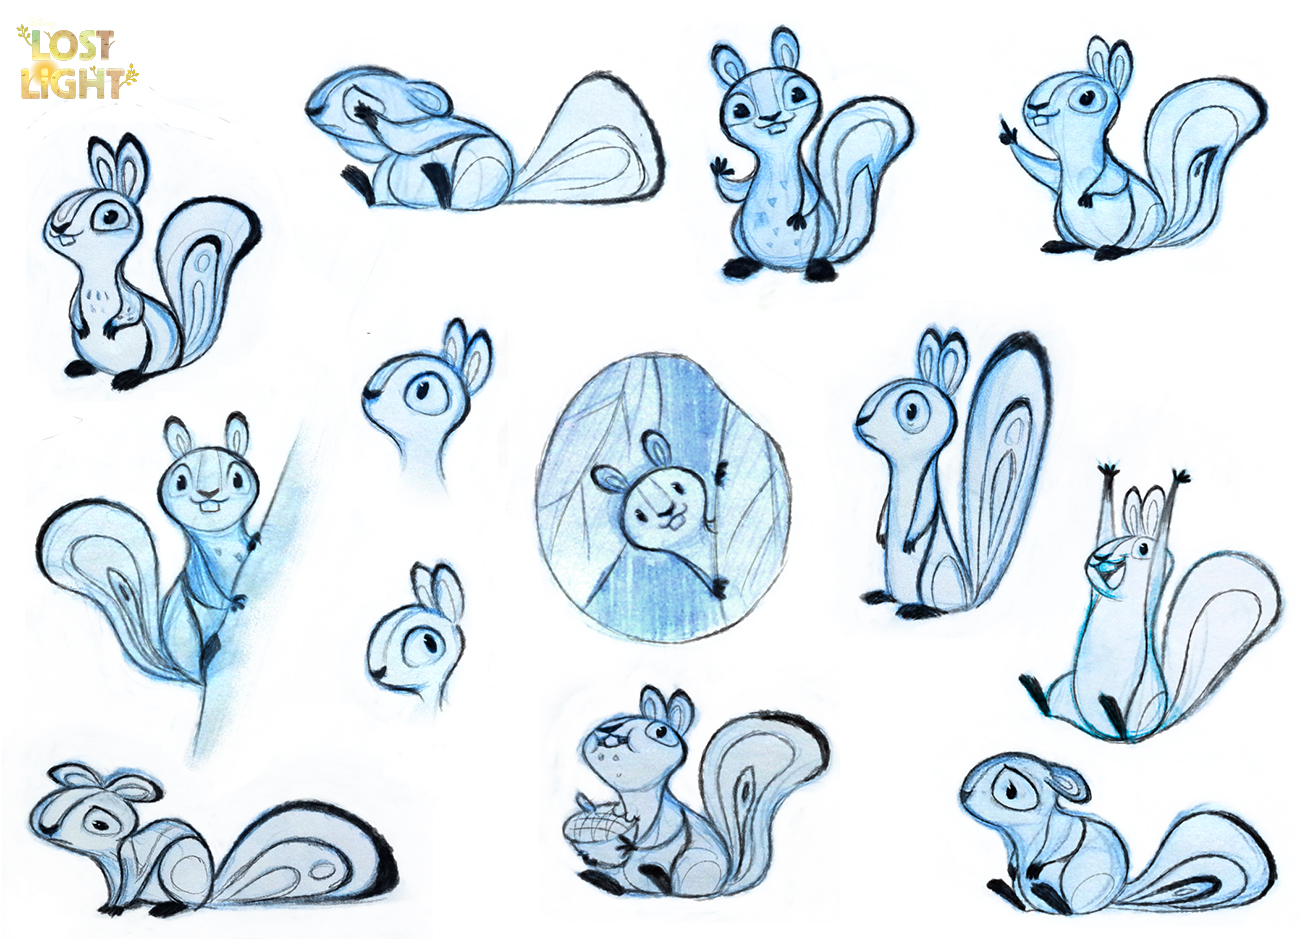 "Lost Light Squirrel ""SumSum"" Concepts"